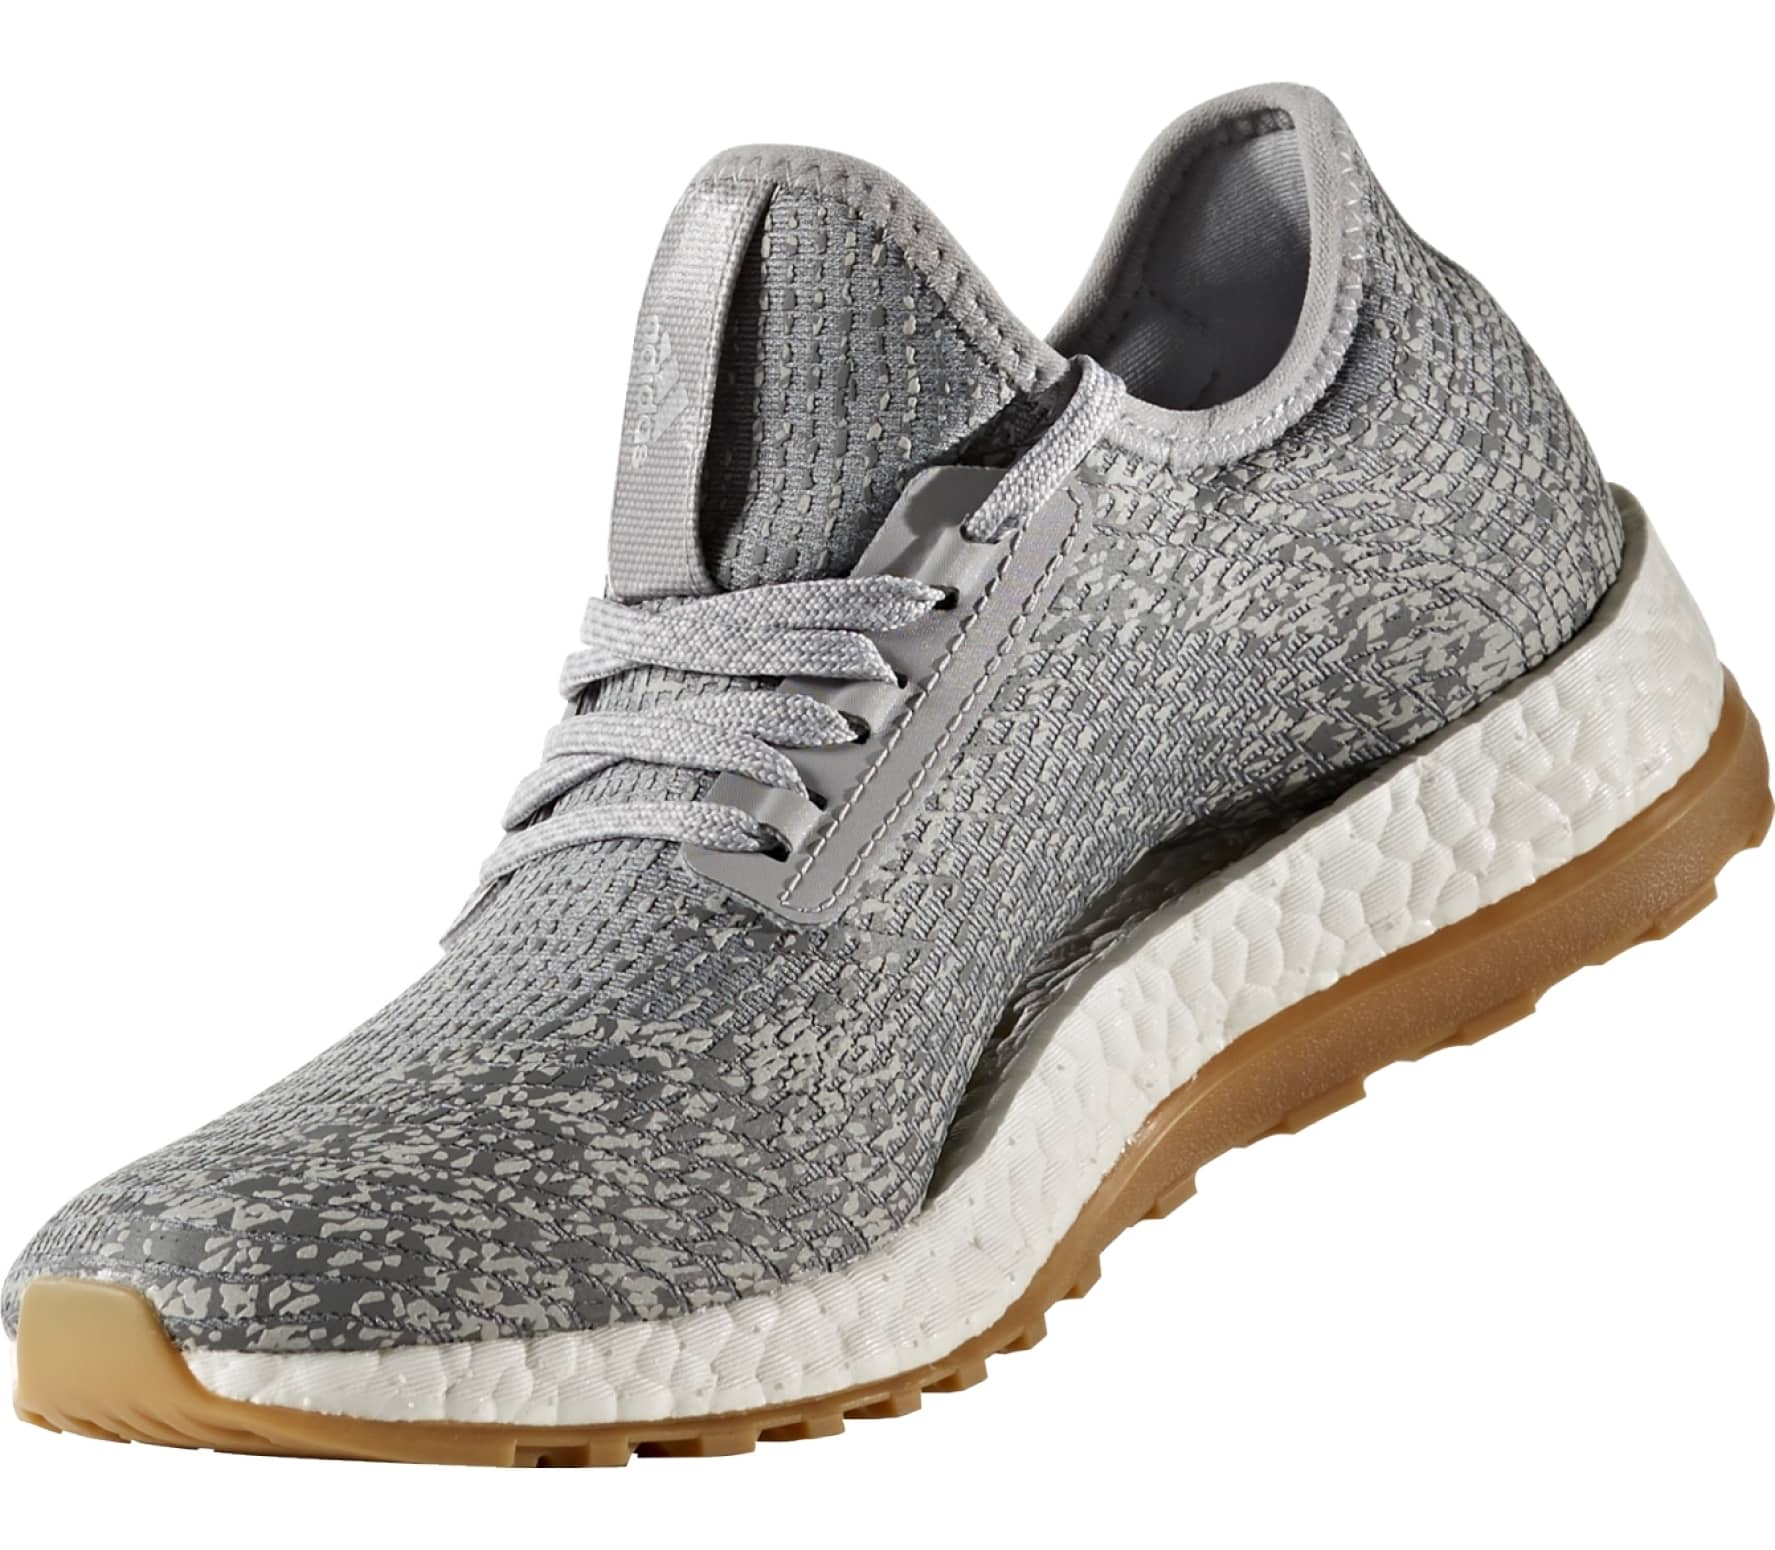 a7630e204 ... free shipping adidas pure boost x atr womens running shoes silver  yellow 89f40 5a5e9